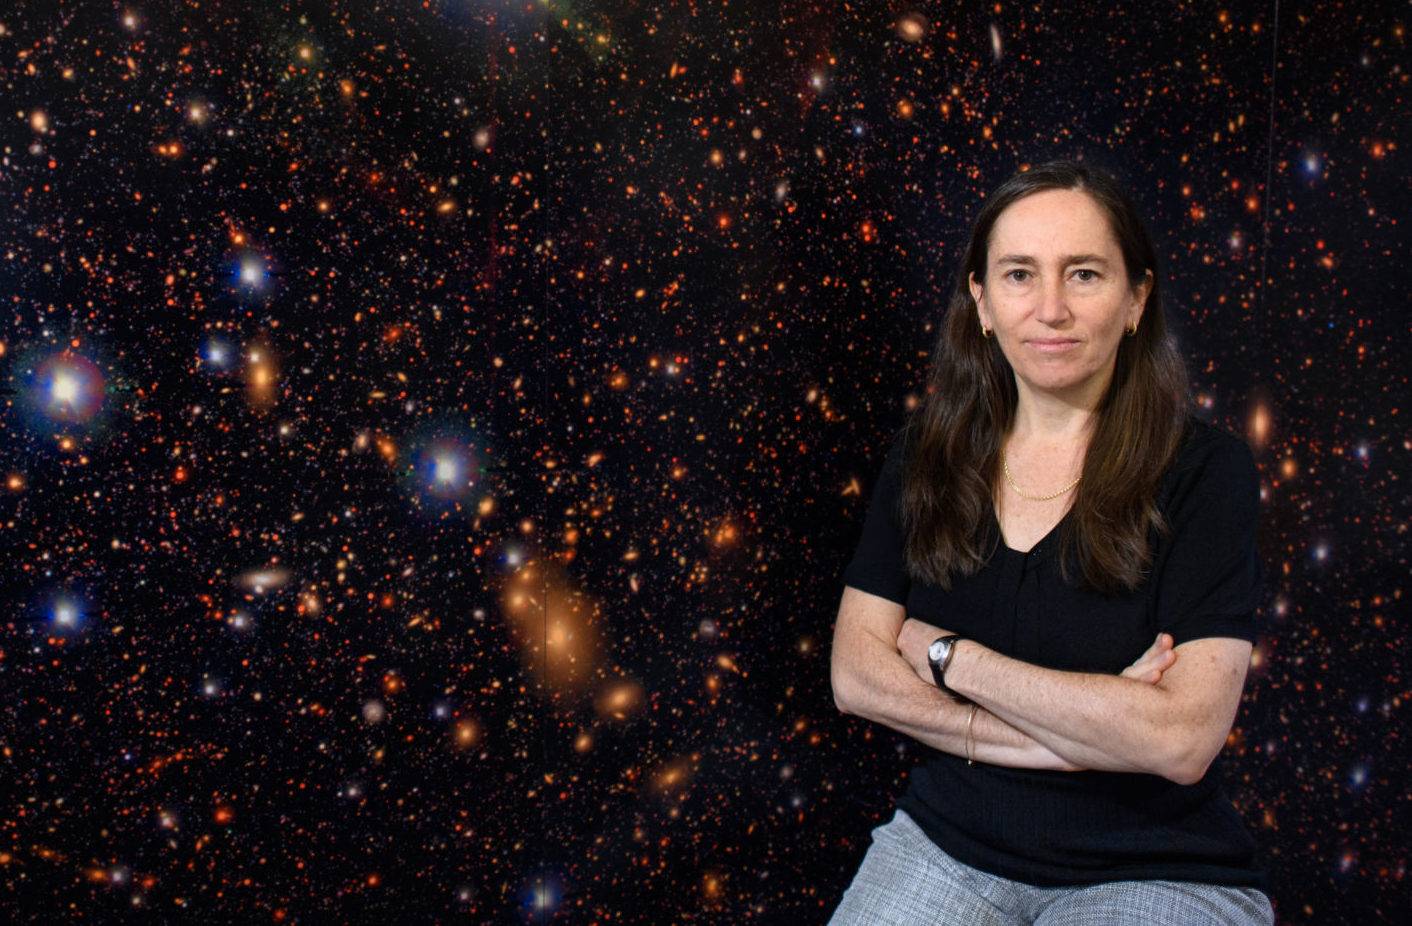 Astrophysicist Eve Ostriker